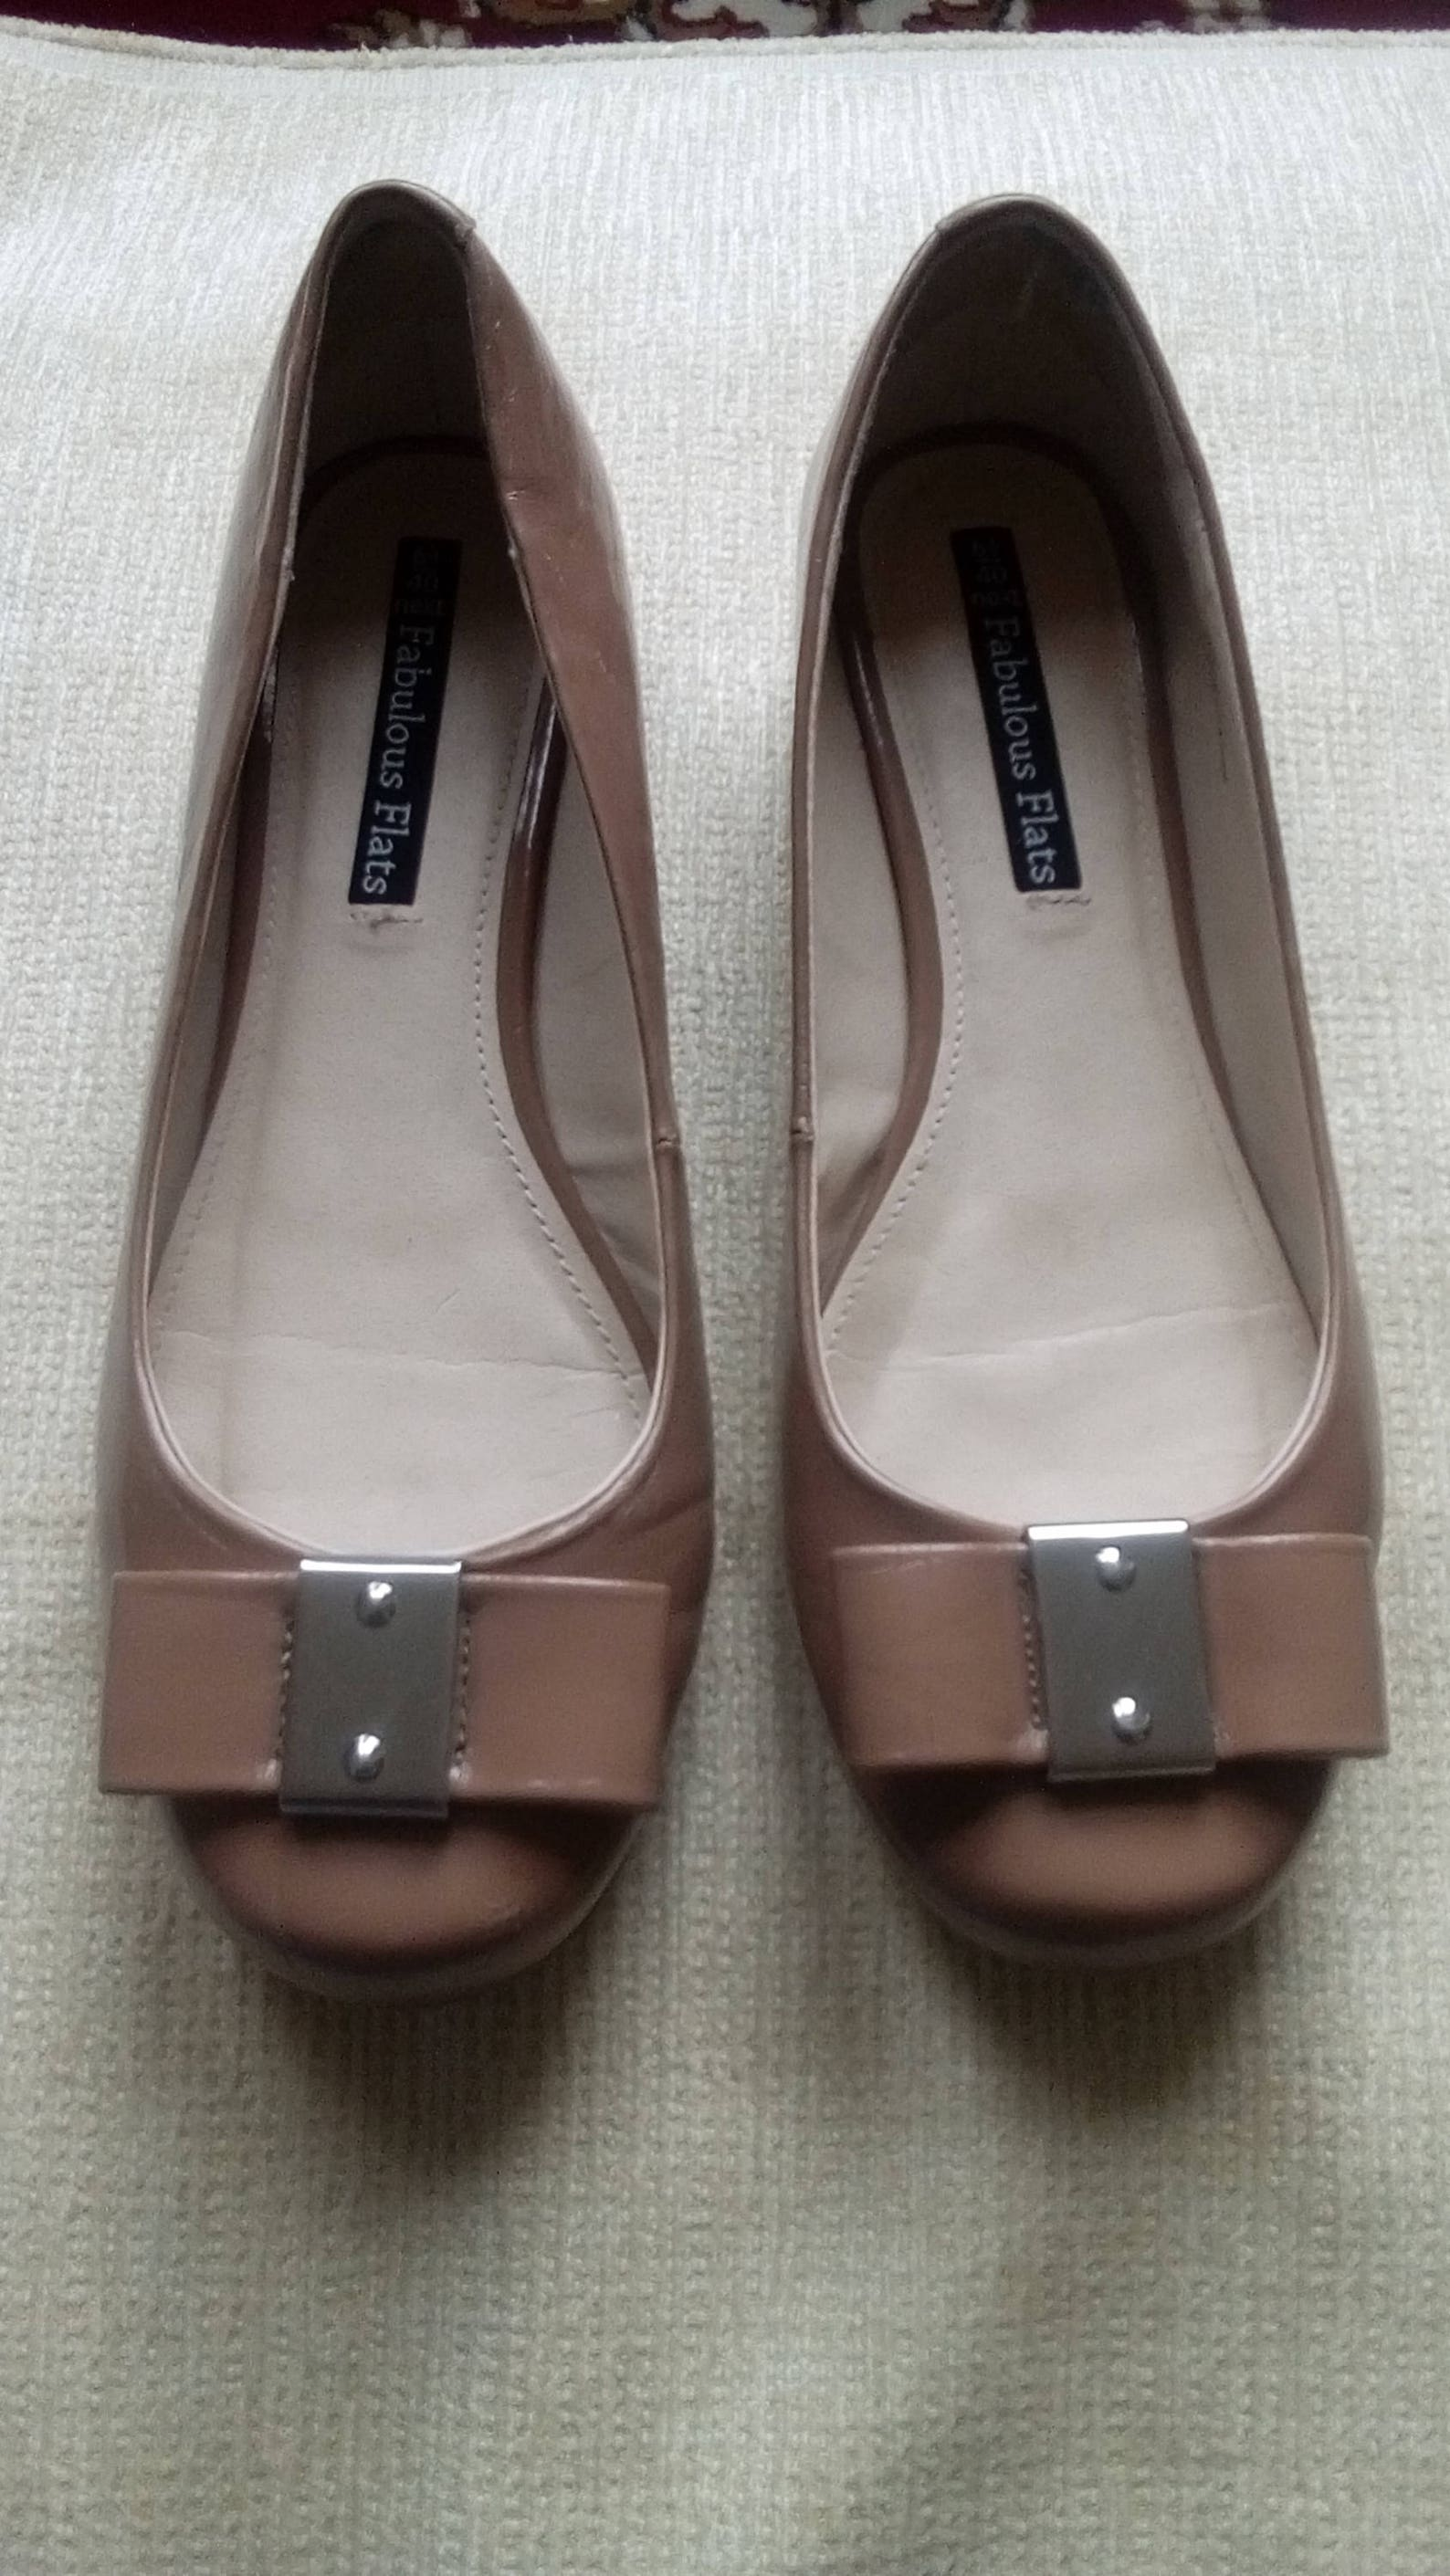 patent leather shoes/patent leather pumps/patent leather shoes/beige shoes/ballet pumps